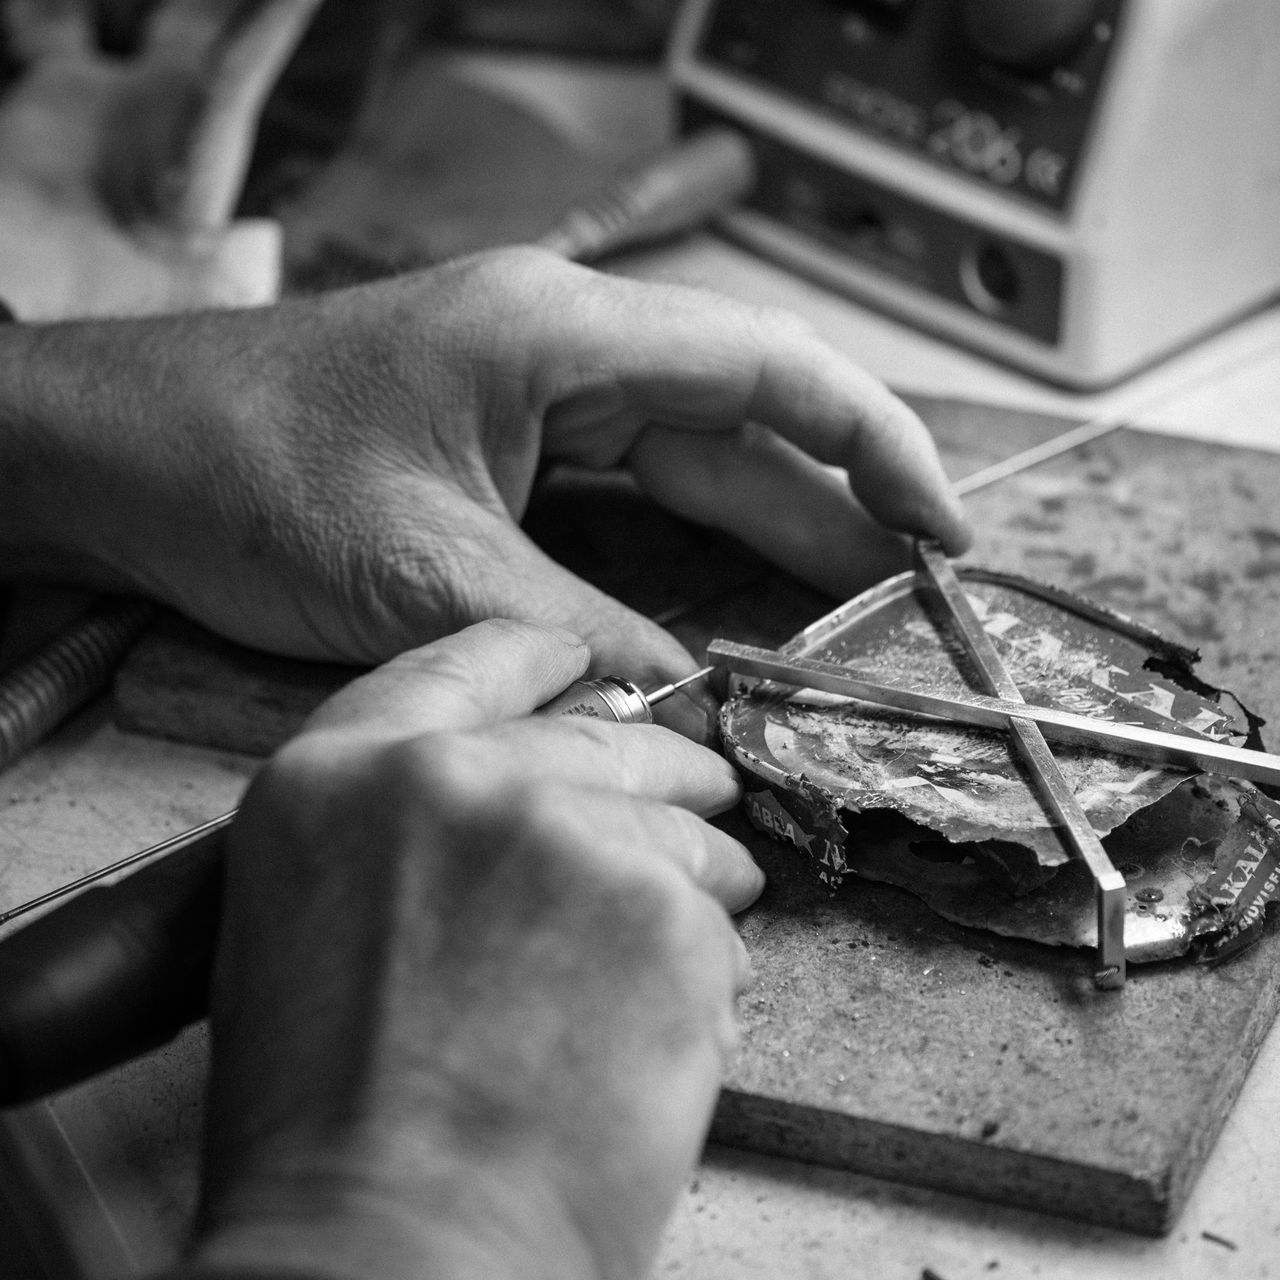 Cropped Image Of Craftsperson Working On Metal At Workshop